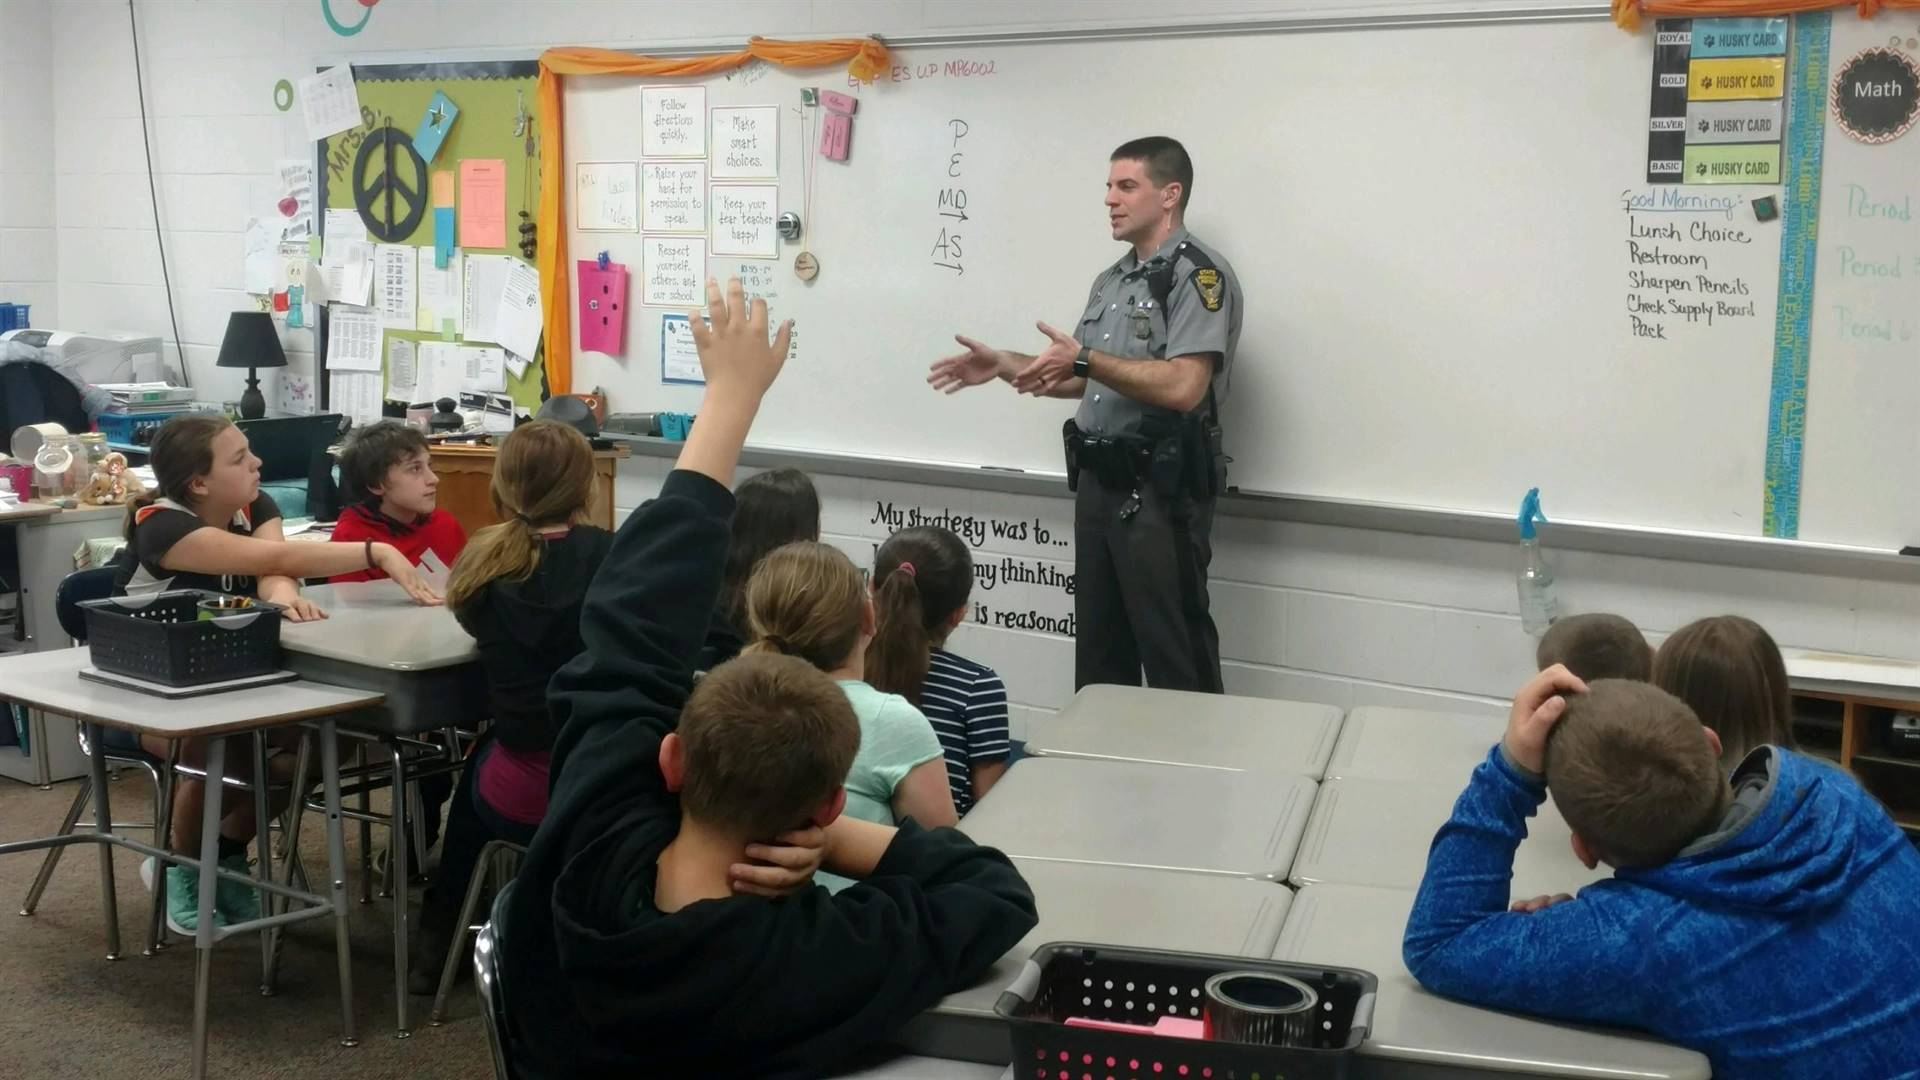 Learning a lot from Trooper Custer!